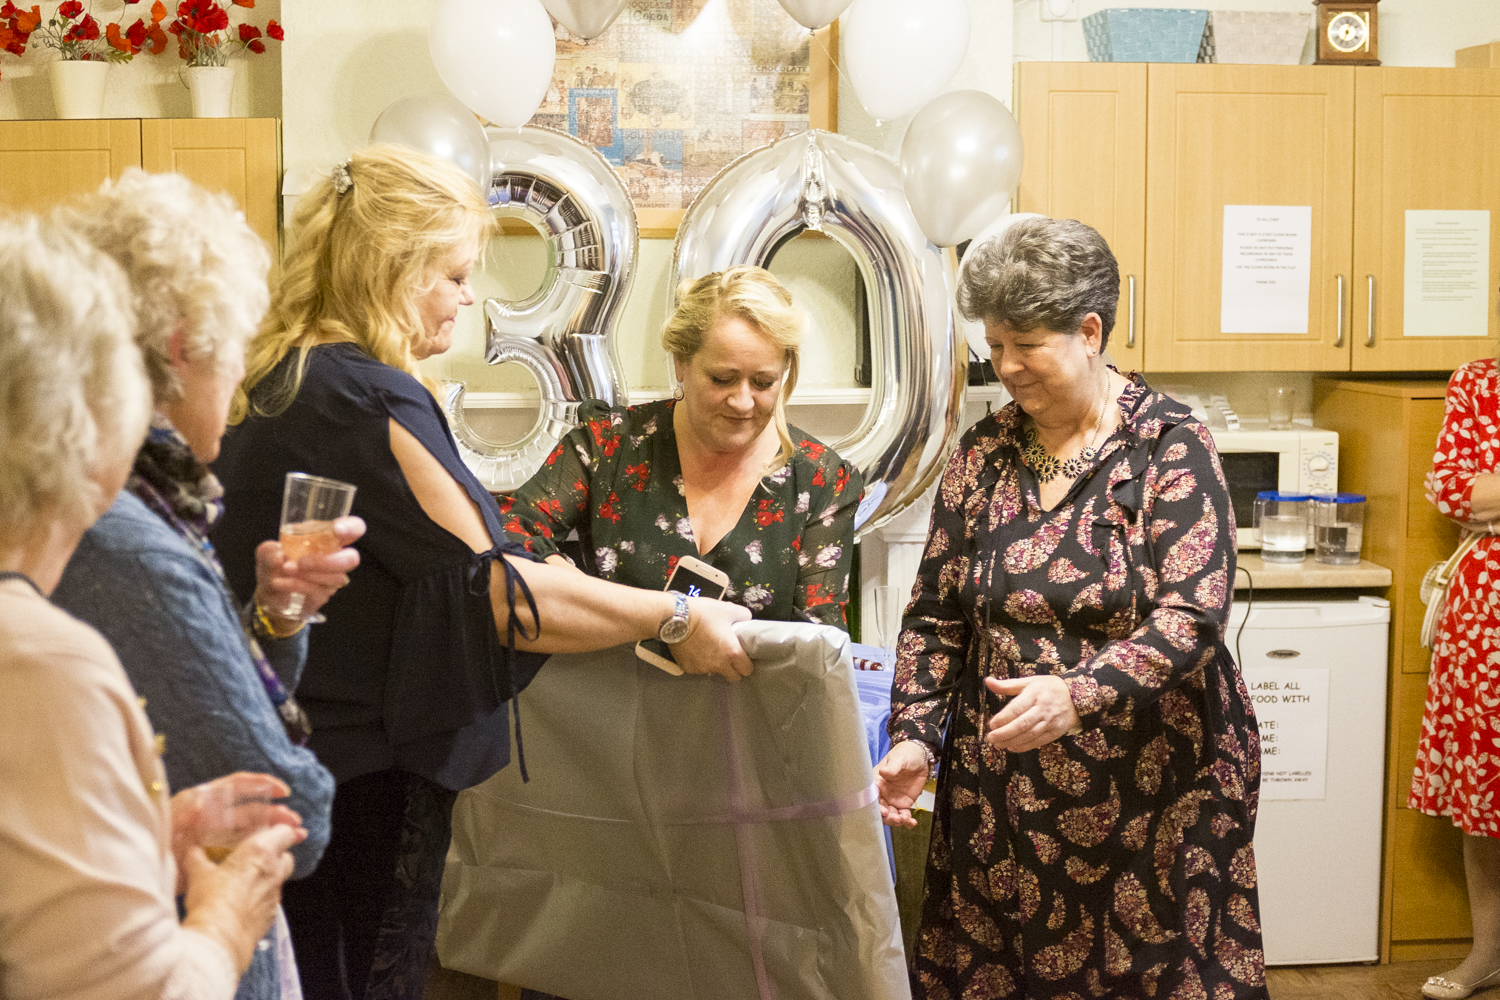 Harrowby-Lodge-Nursing-Home-30th-Anniversary-33.jpg